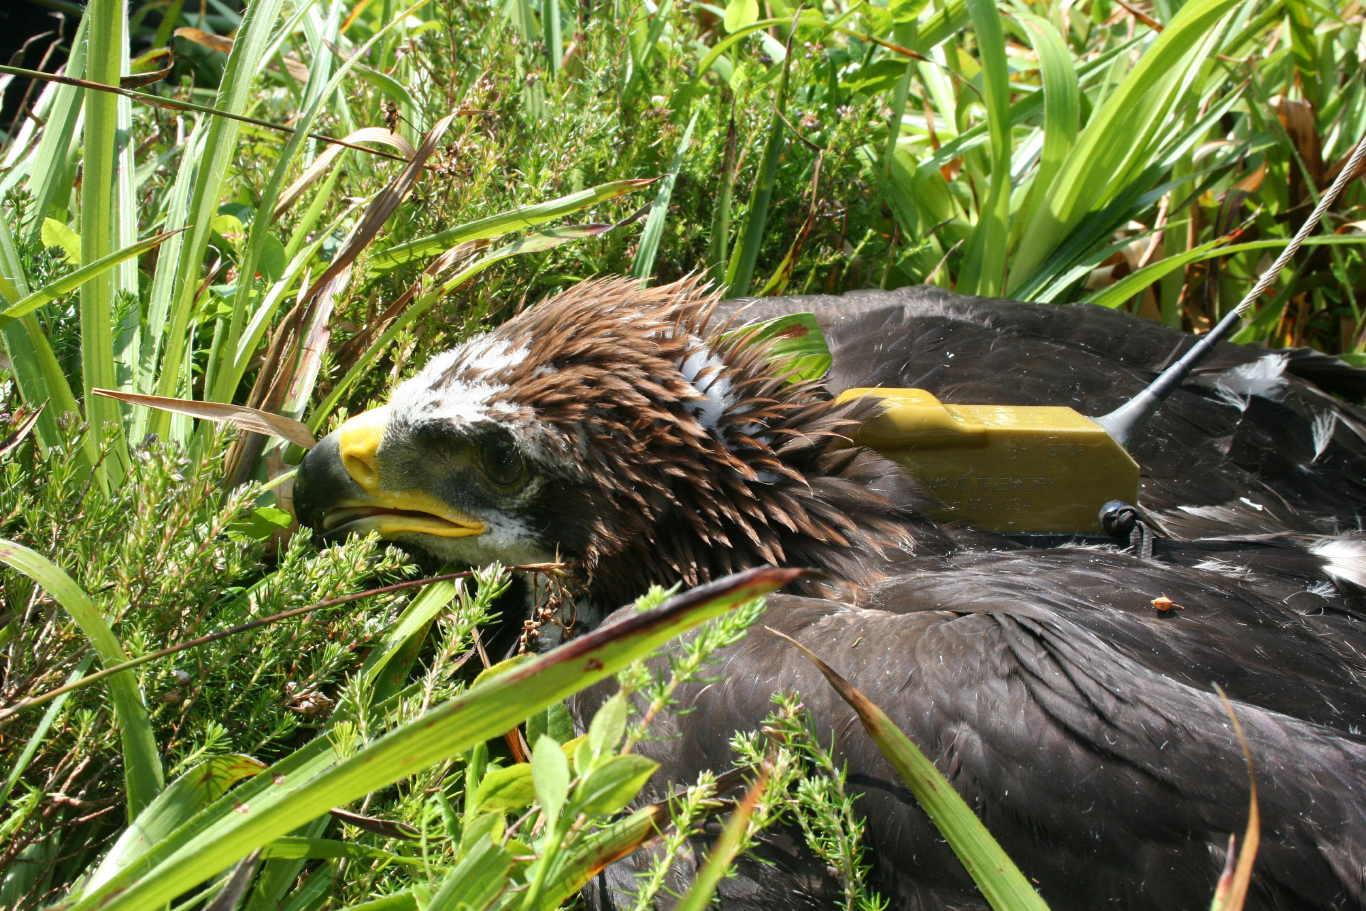 One of the RSPB's most recently tagged Golden Eagles; a suspiciously large proportion of these birds go missing on or near shooting estates. Photo: Duncan Orr-Ewing/RSPB.